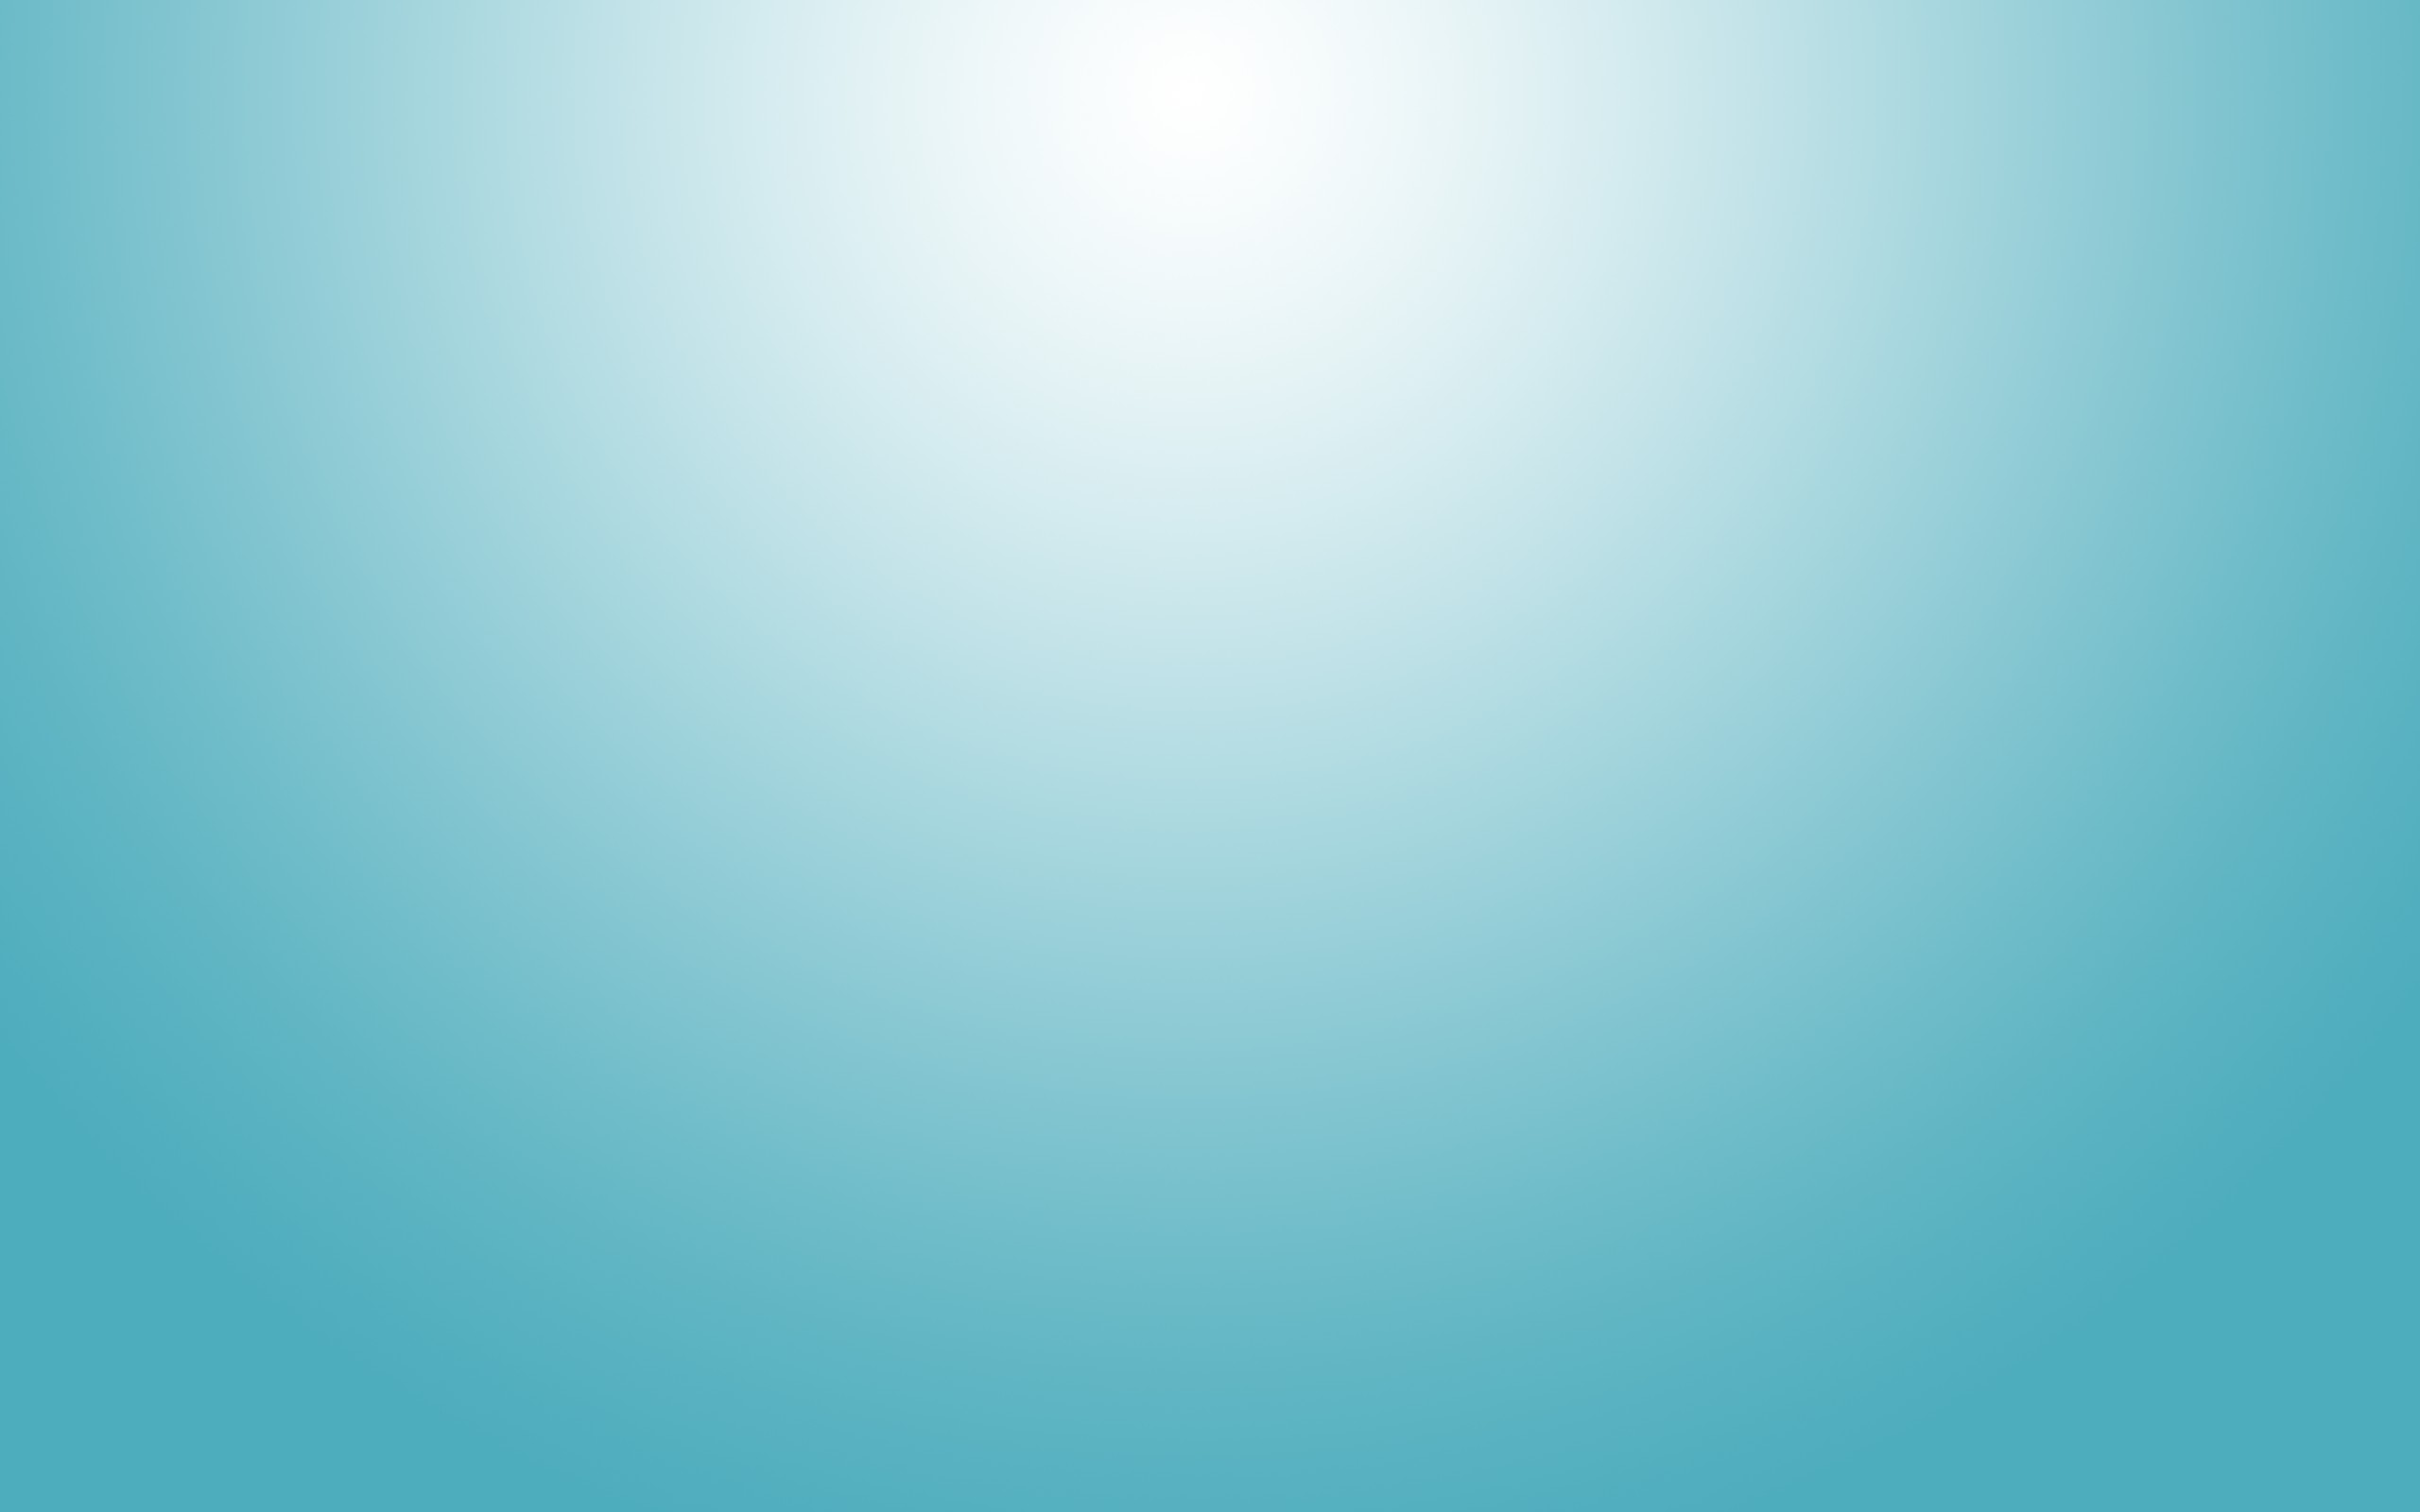 Gradient Background Tumblr 1 Download Free Amazing Full HD